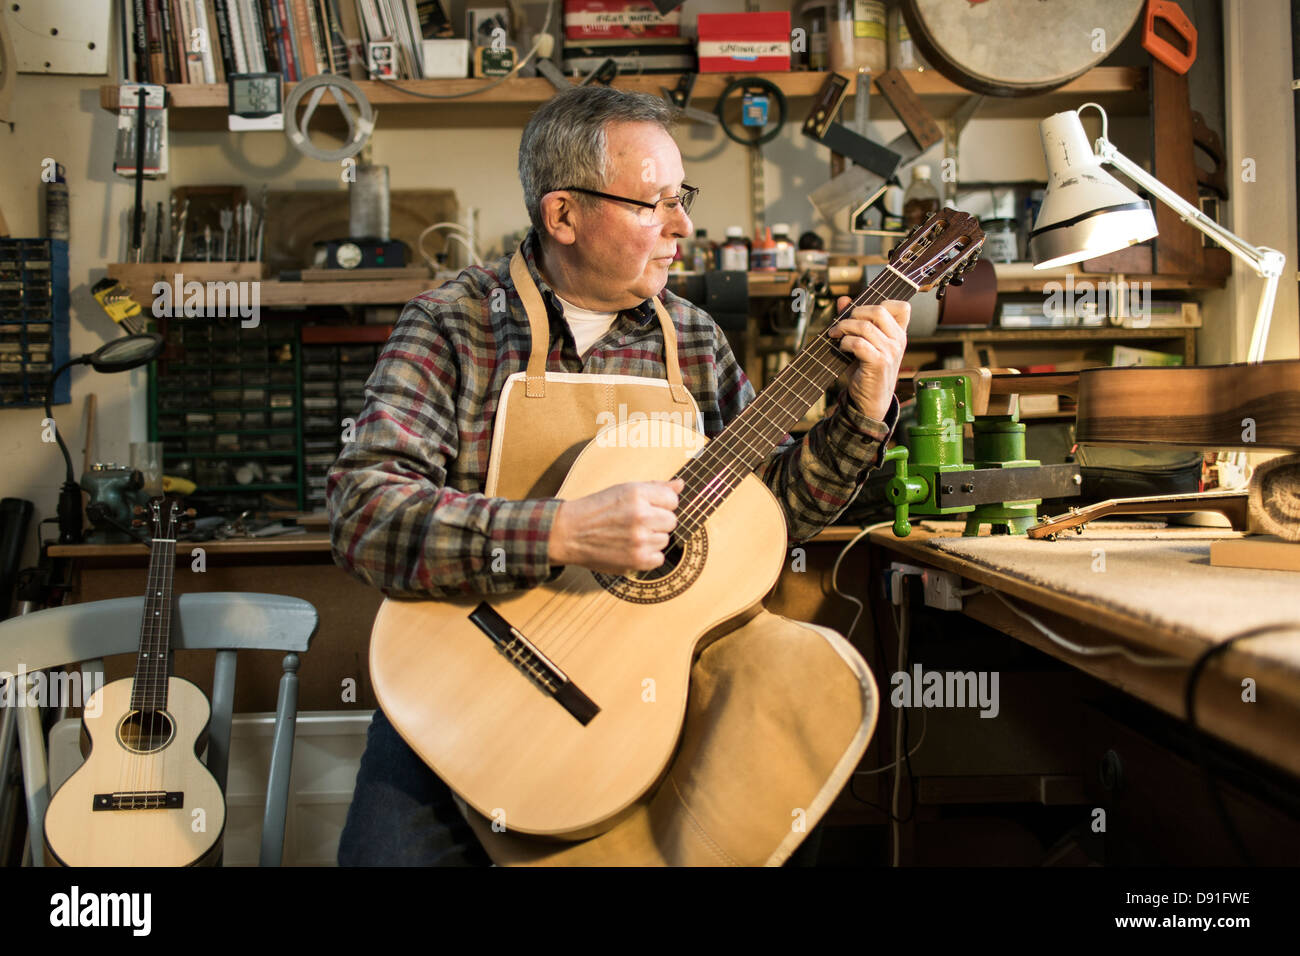 Guitar maker tuning and testing acoustic guitar in workshop - Stock Image